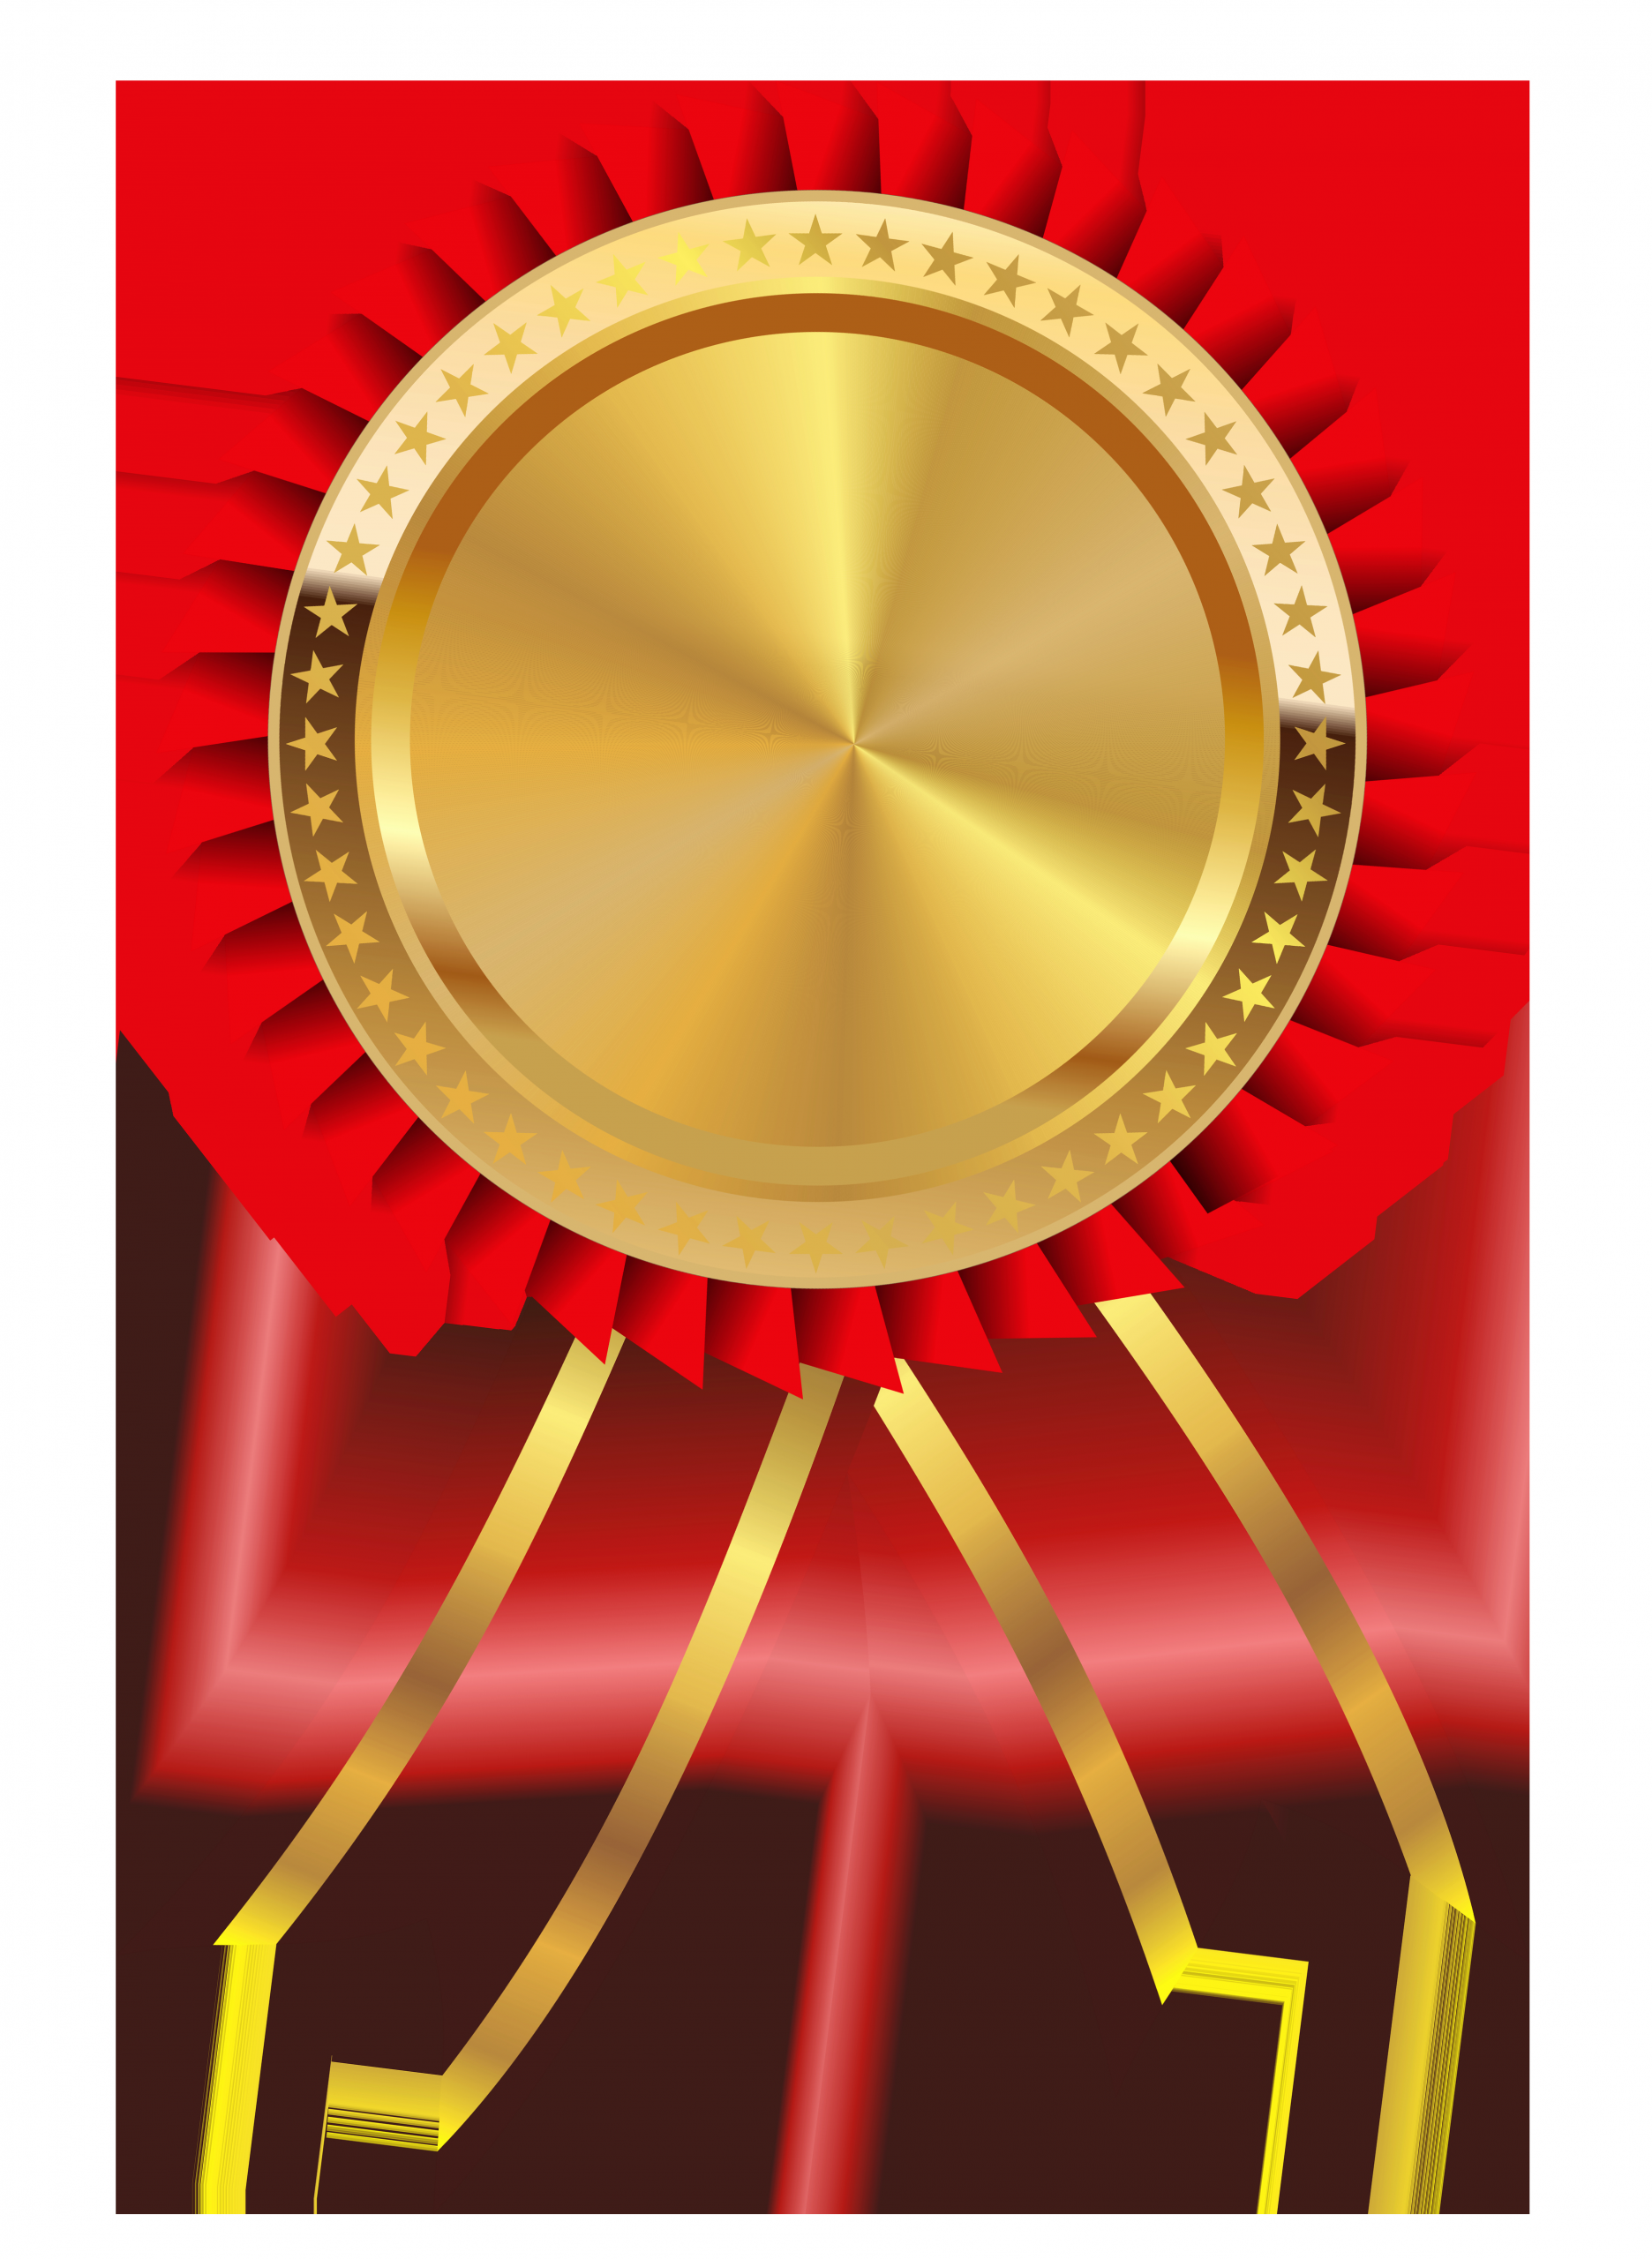 Picture Of Award Ribbon Inspirational Medals Clipart Clipground